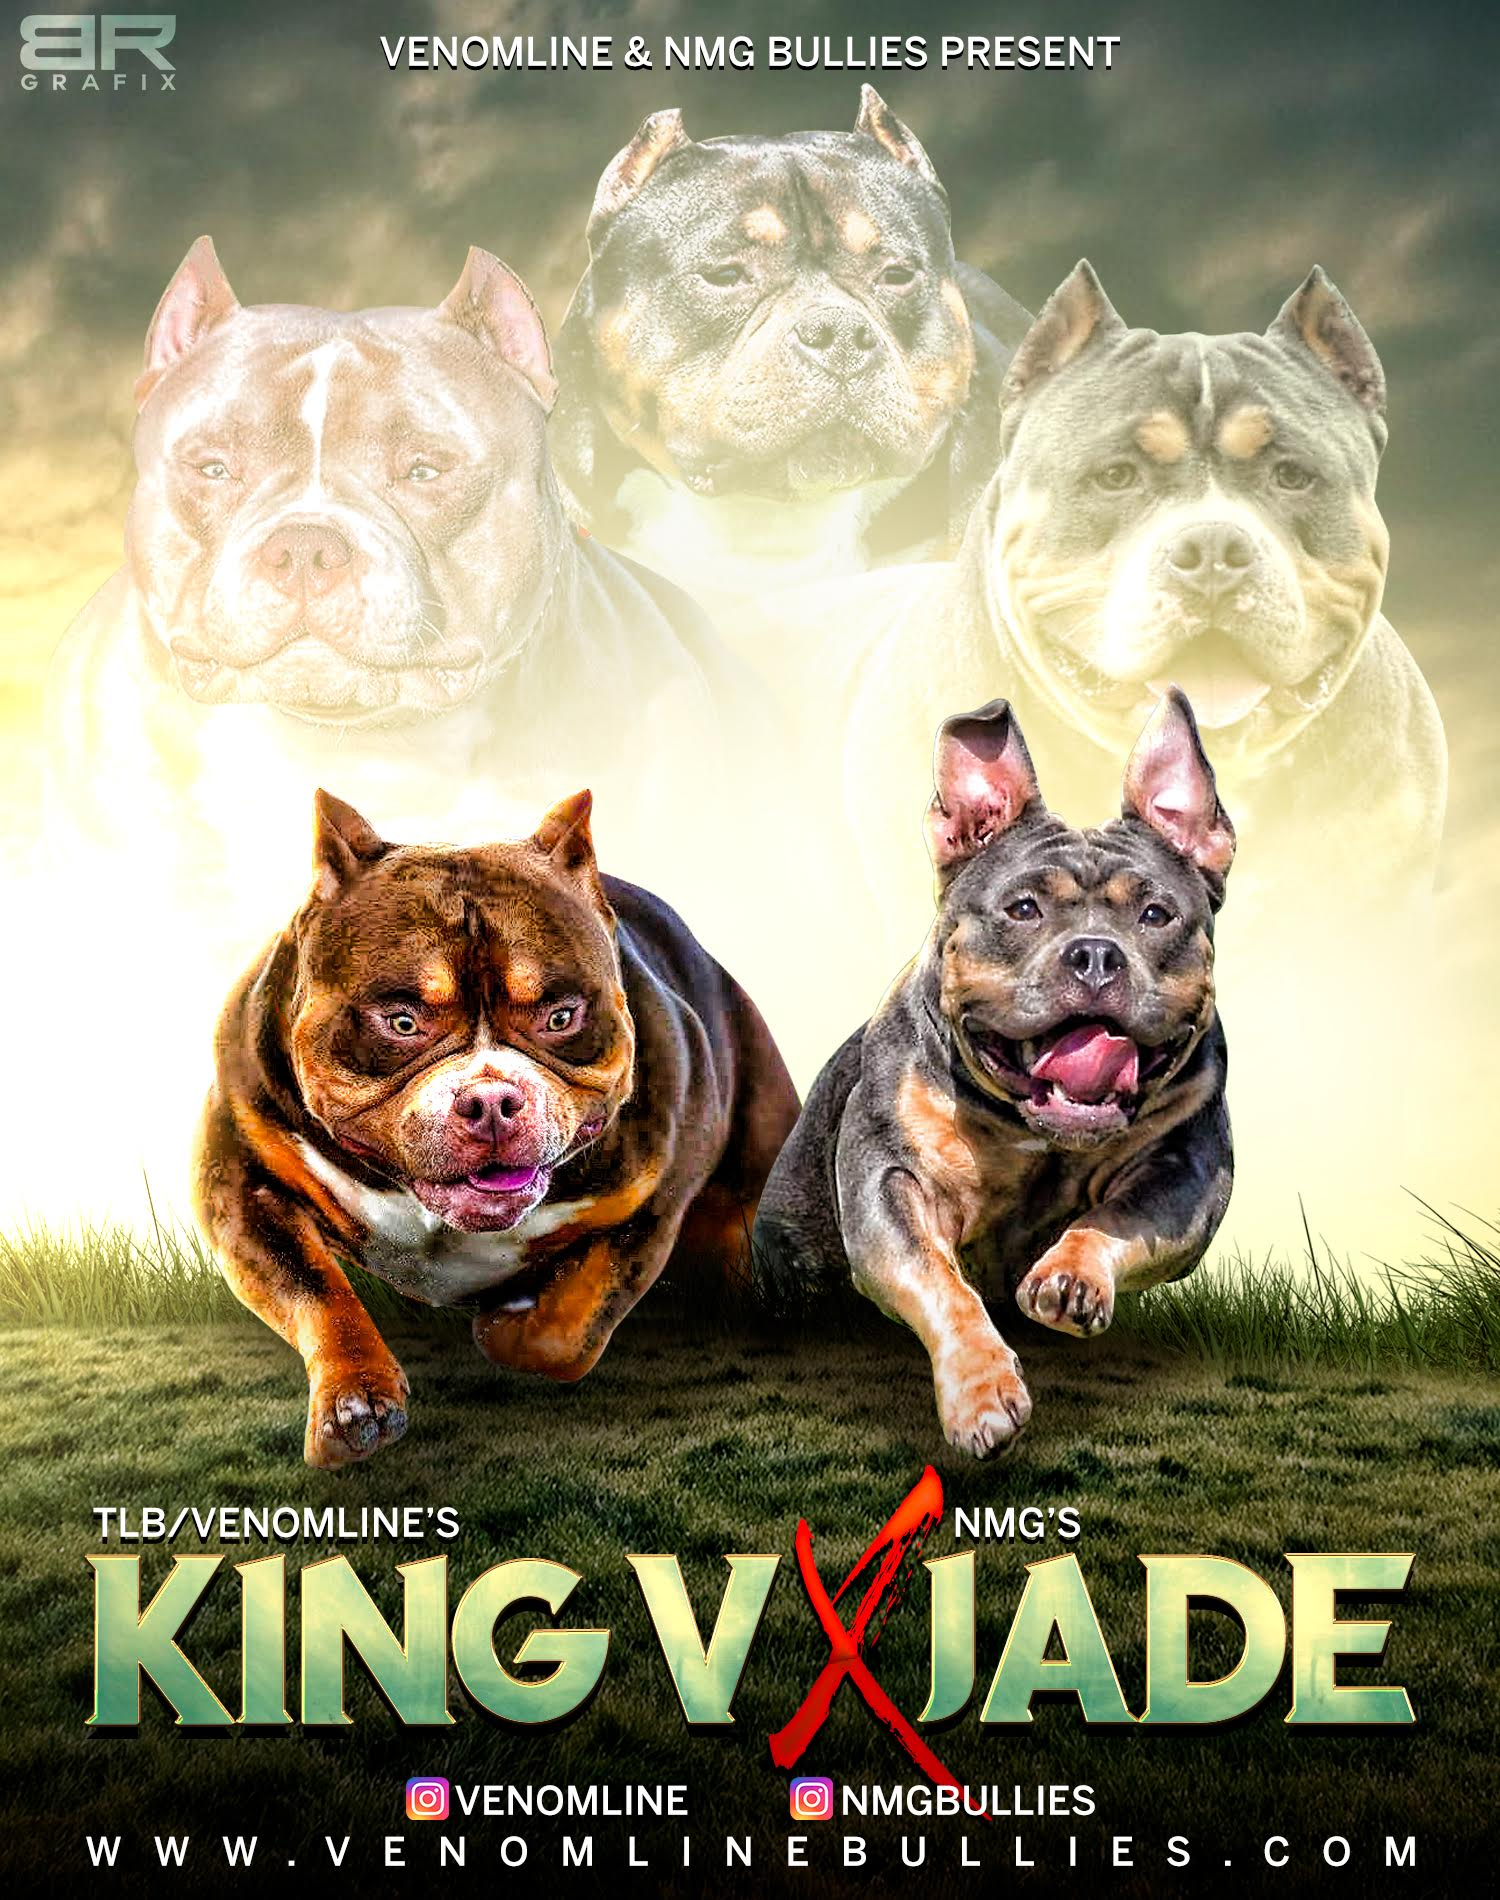 American Bully Breeders, American Bully Kennels, Pocket Bully Kennels, Pocket Bully Breeders, Pocket Bully Kennels, Best Pocket Bully Breeders, Best Pocket Bully Kennels, Top Pocket Bully Studs, Venomline, Pocket American Bully, Puppies for Sale